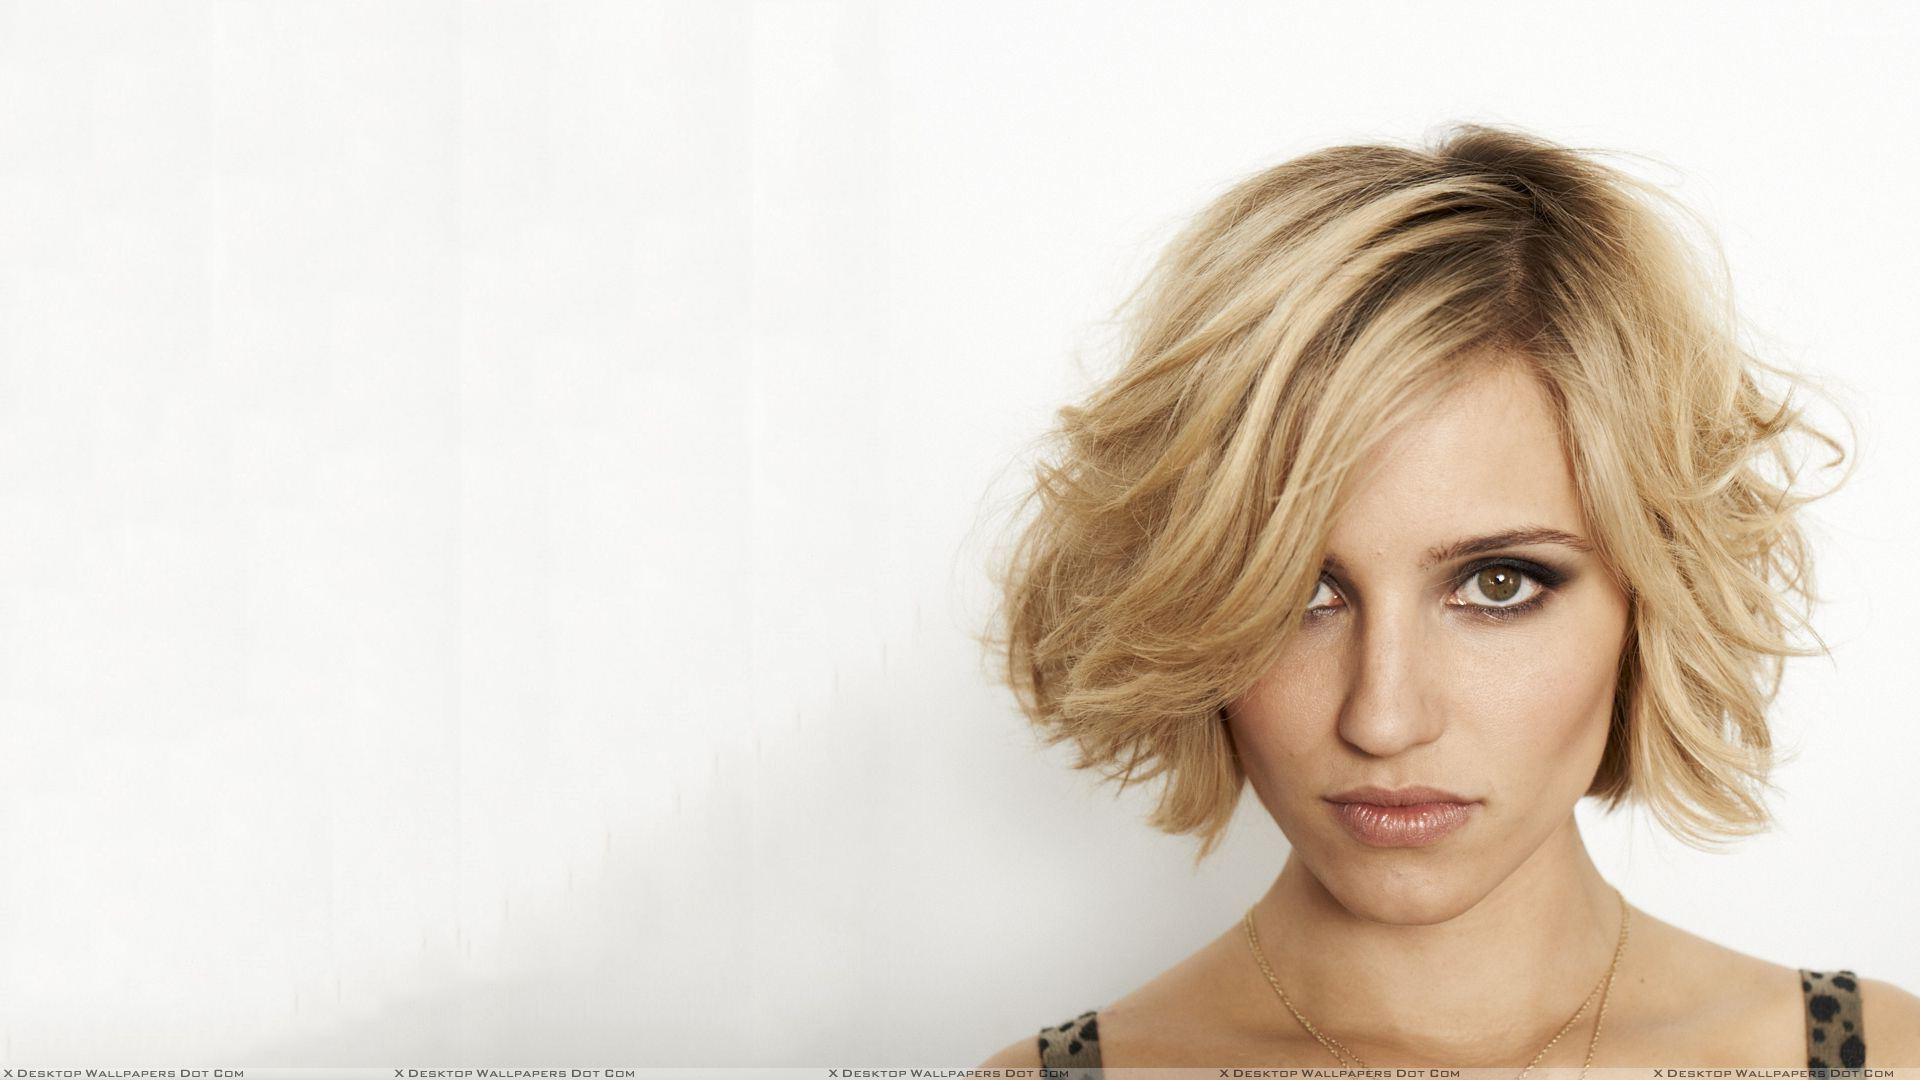 1920x1080 - Dianna Agron Wallpapers 34